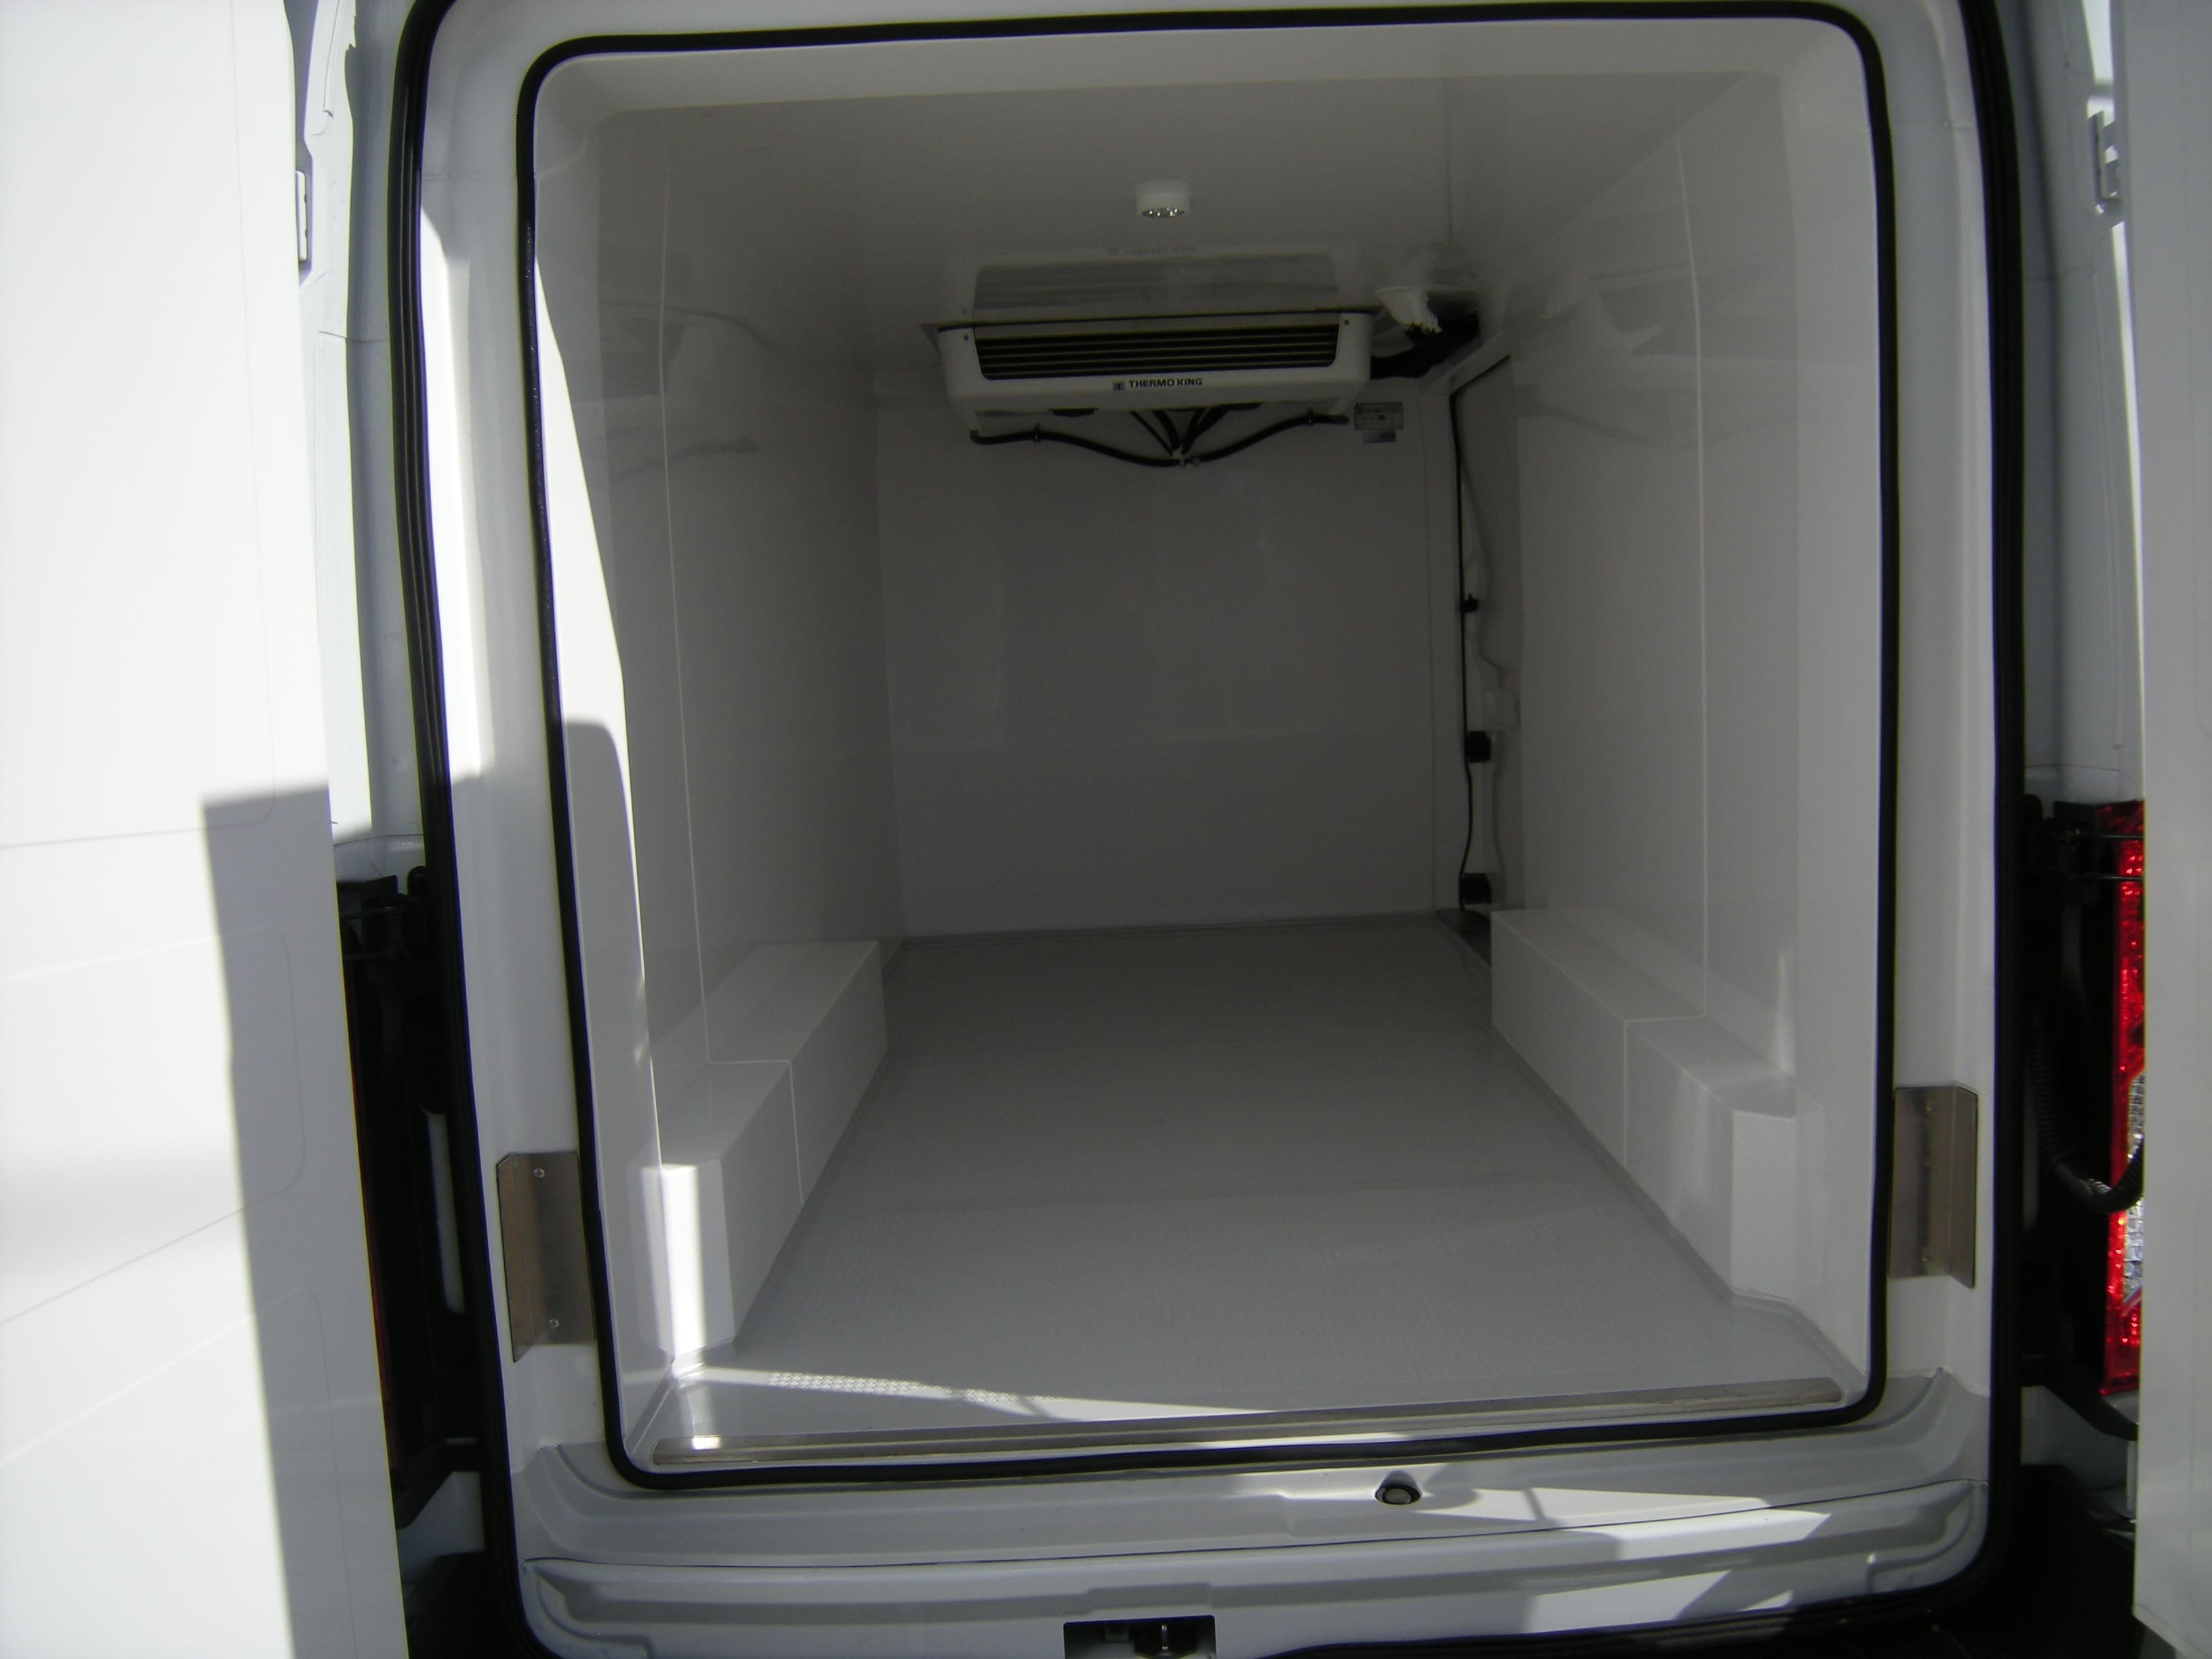 2018 Transit 250 Med Roof 4x2,  Thermo King Refrigerated Body #C85603 - photo 2